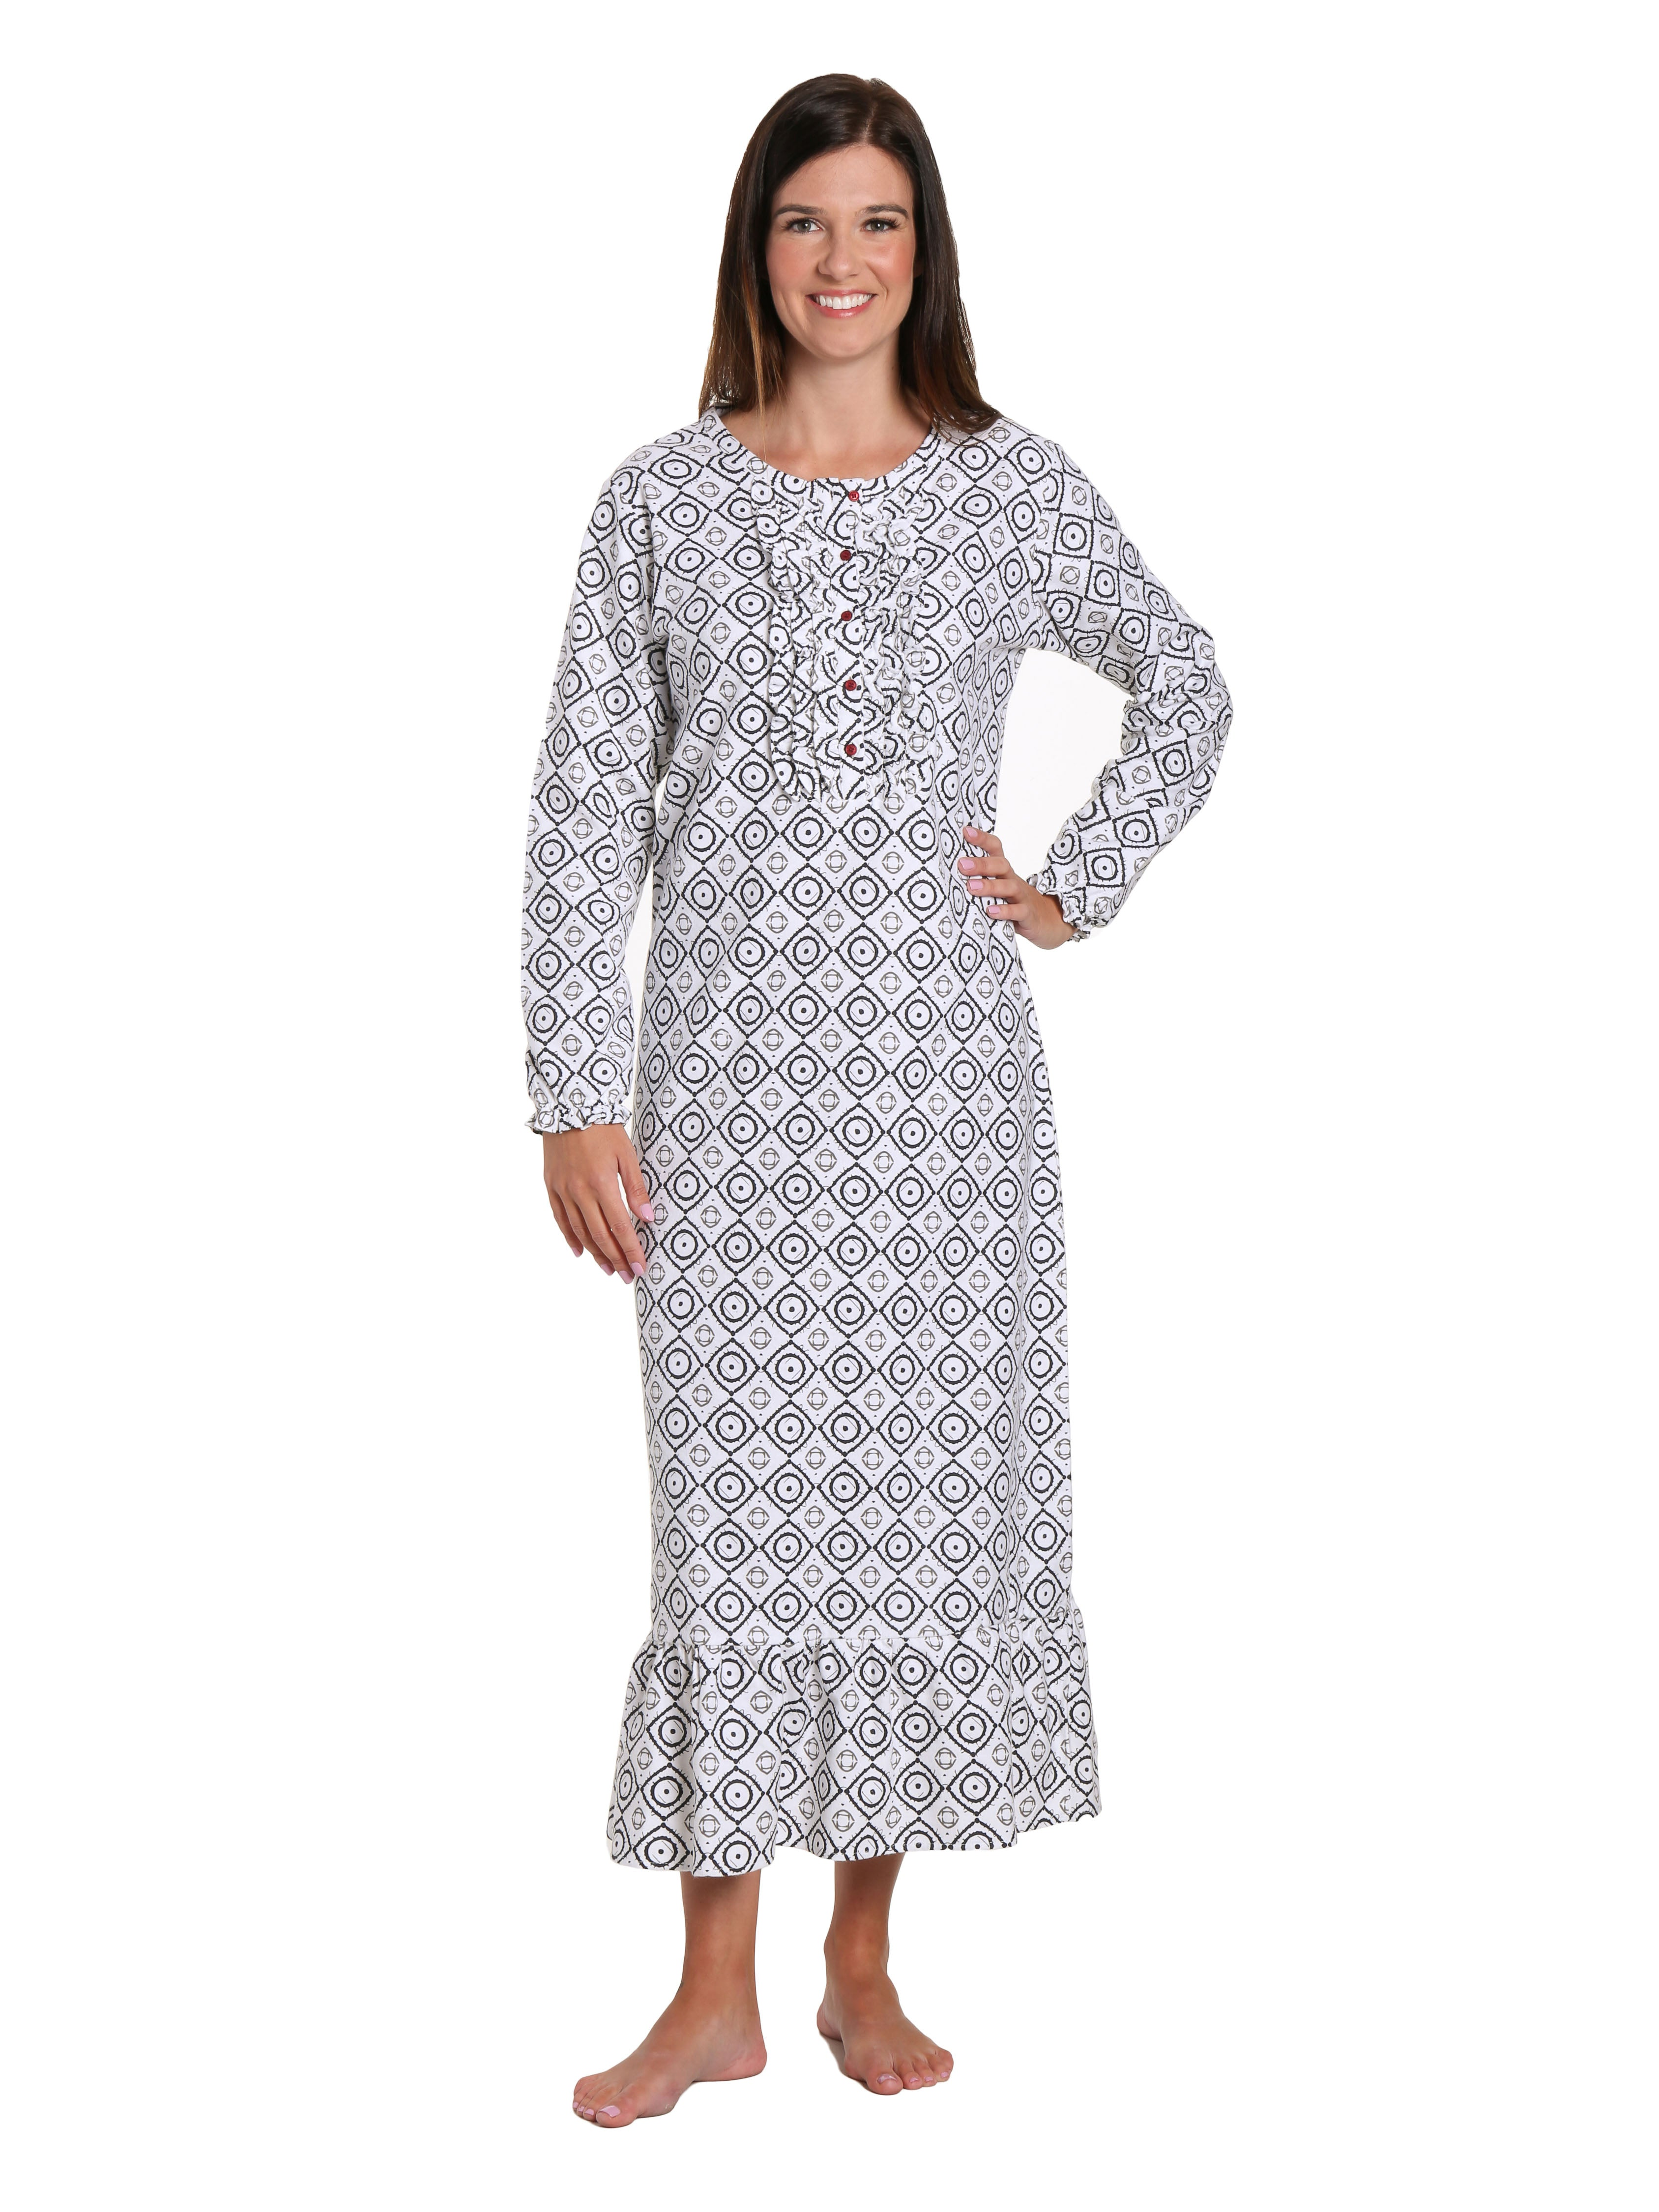 Women's Premium Flannel Long Gown - Moroccan White-Black